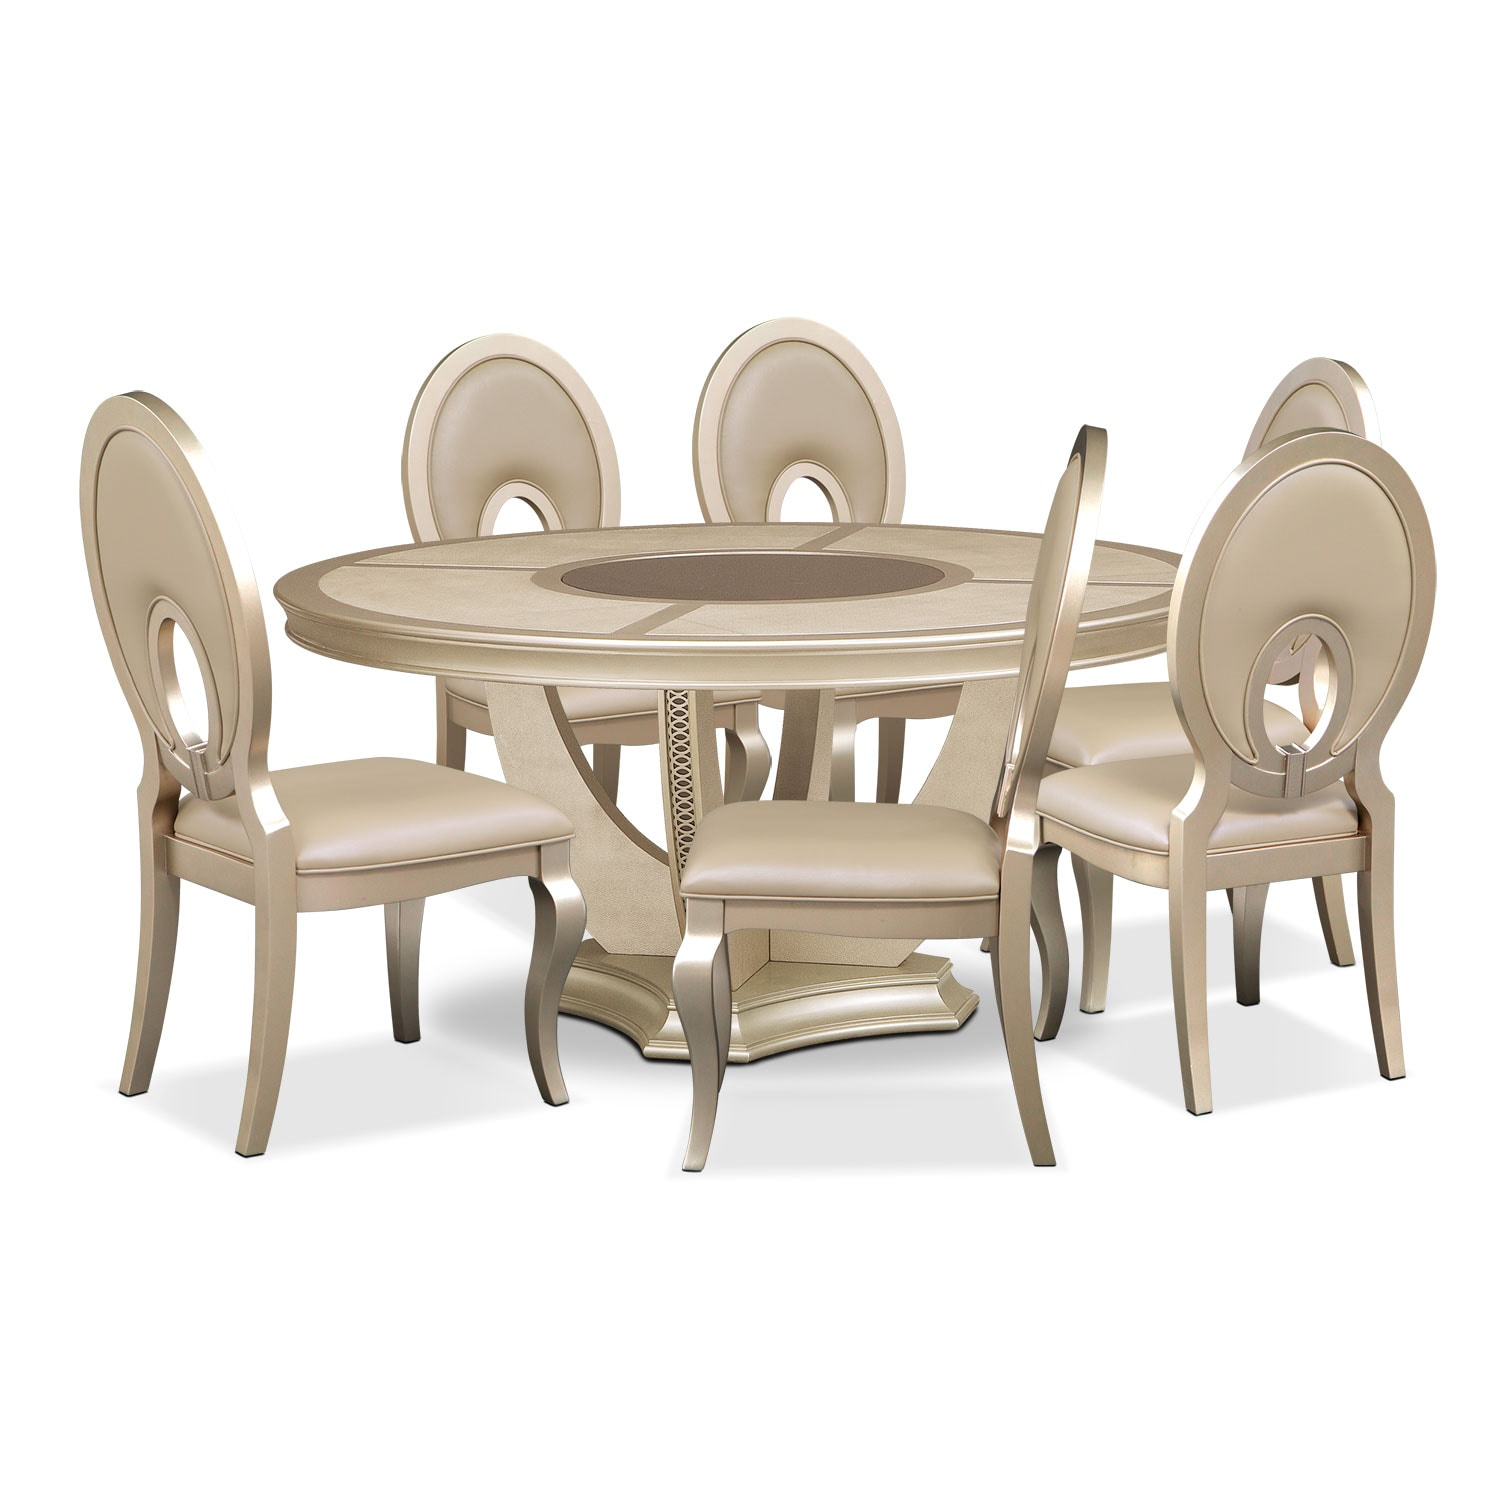 Dining Room Furniture - Allegro Round Table and 6 Chairs - Platinum